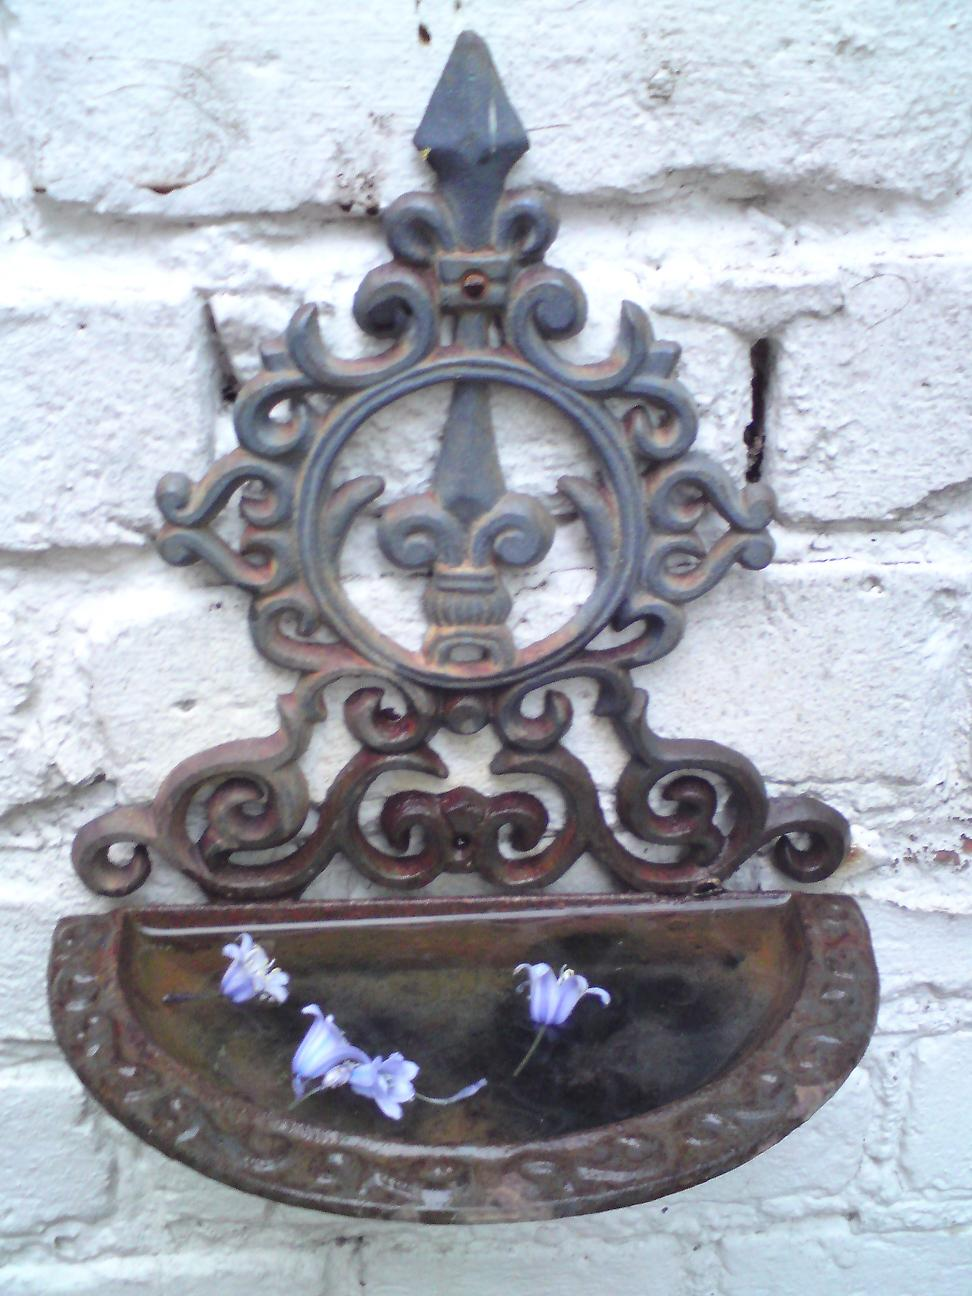 decorative iron bird bath 2